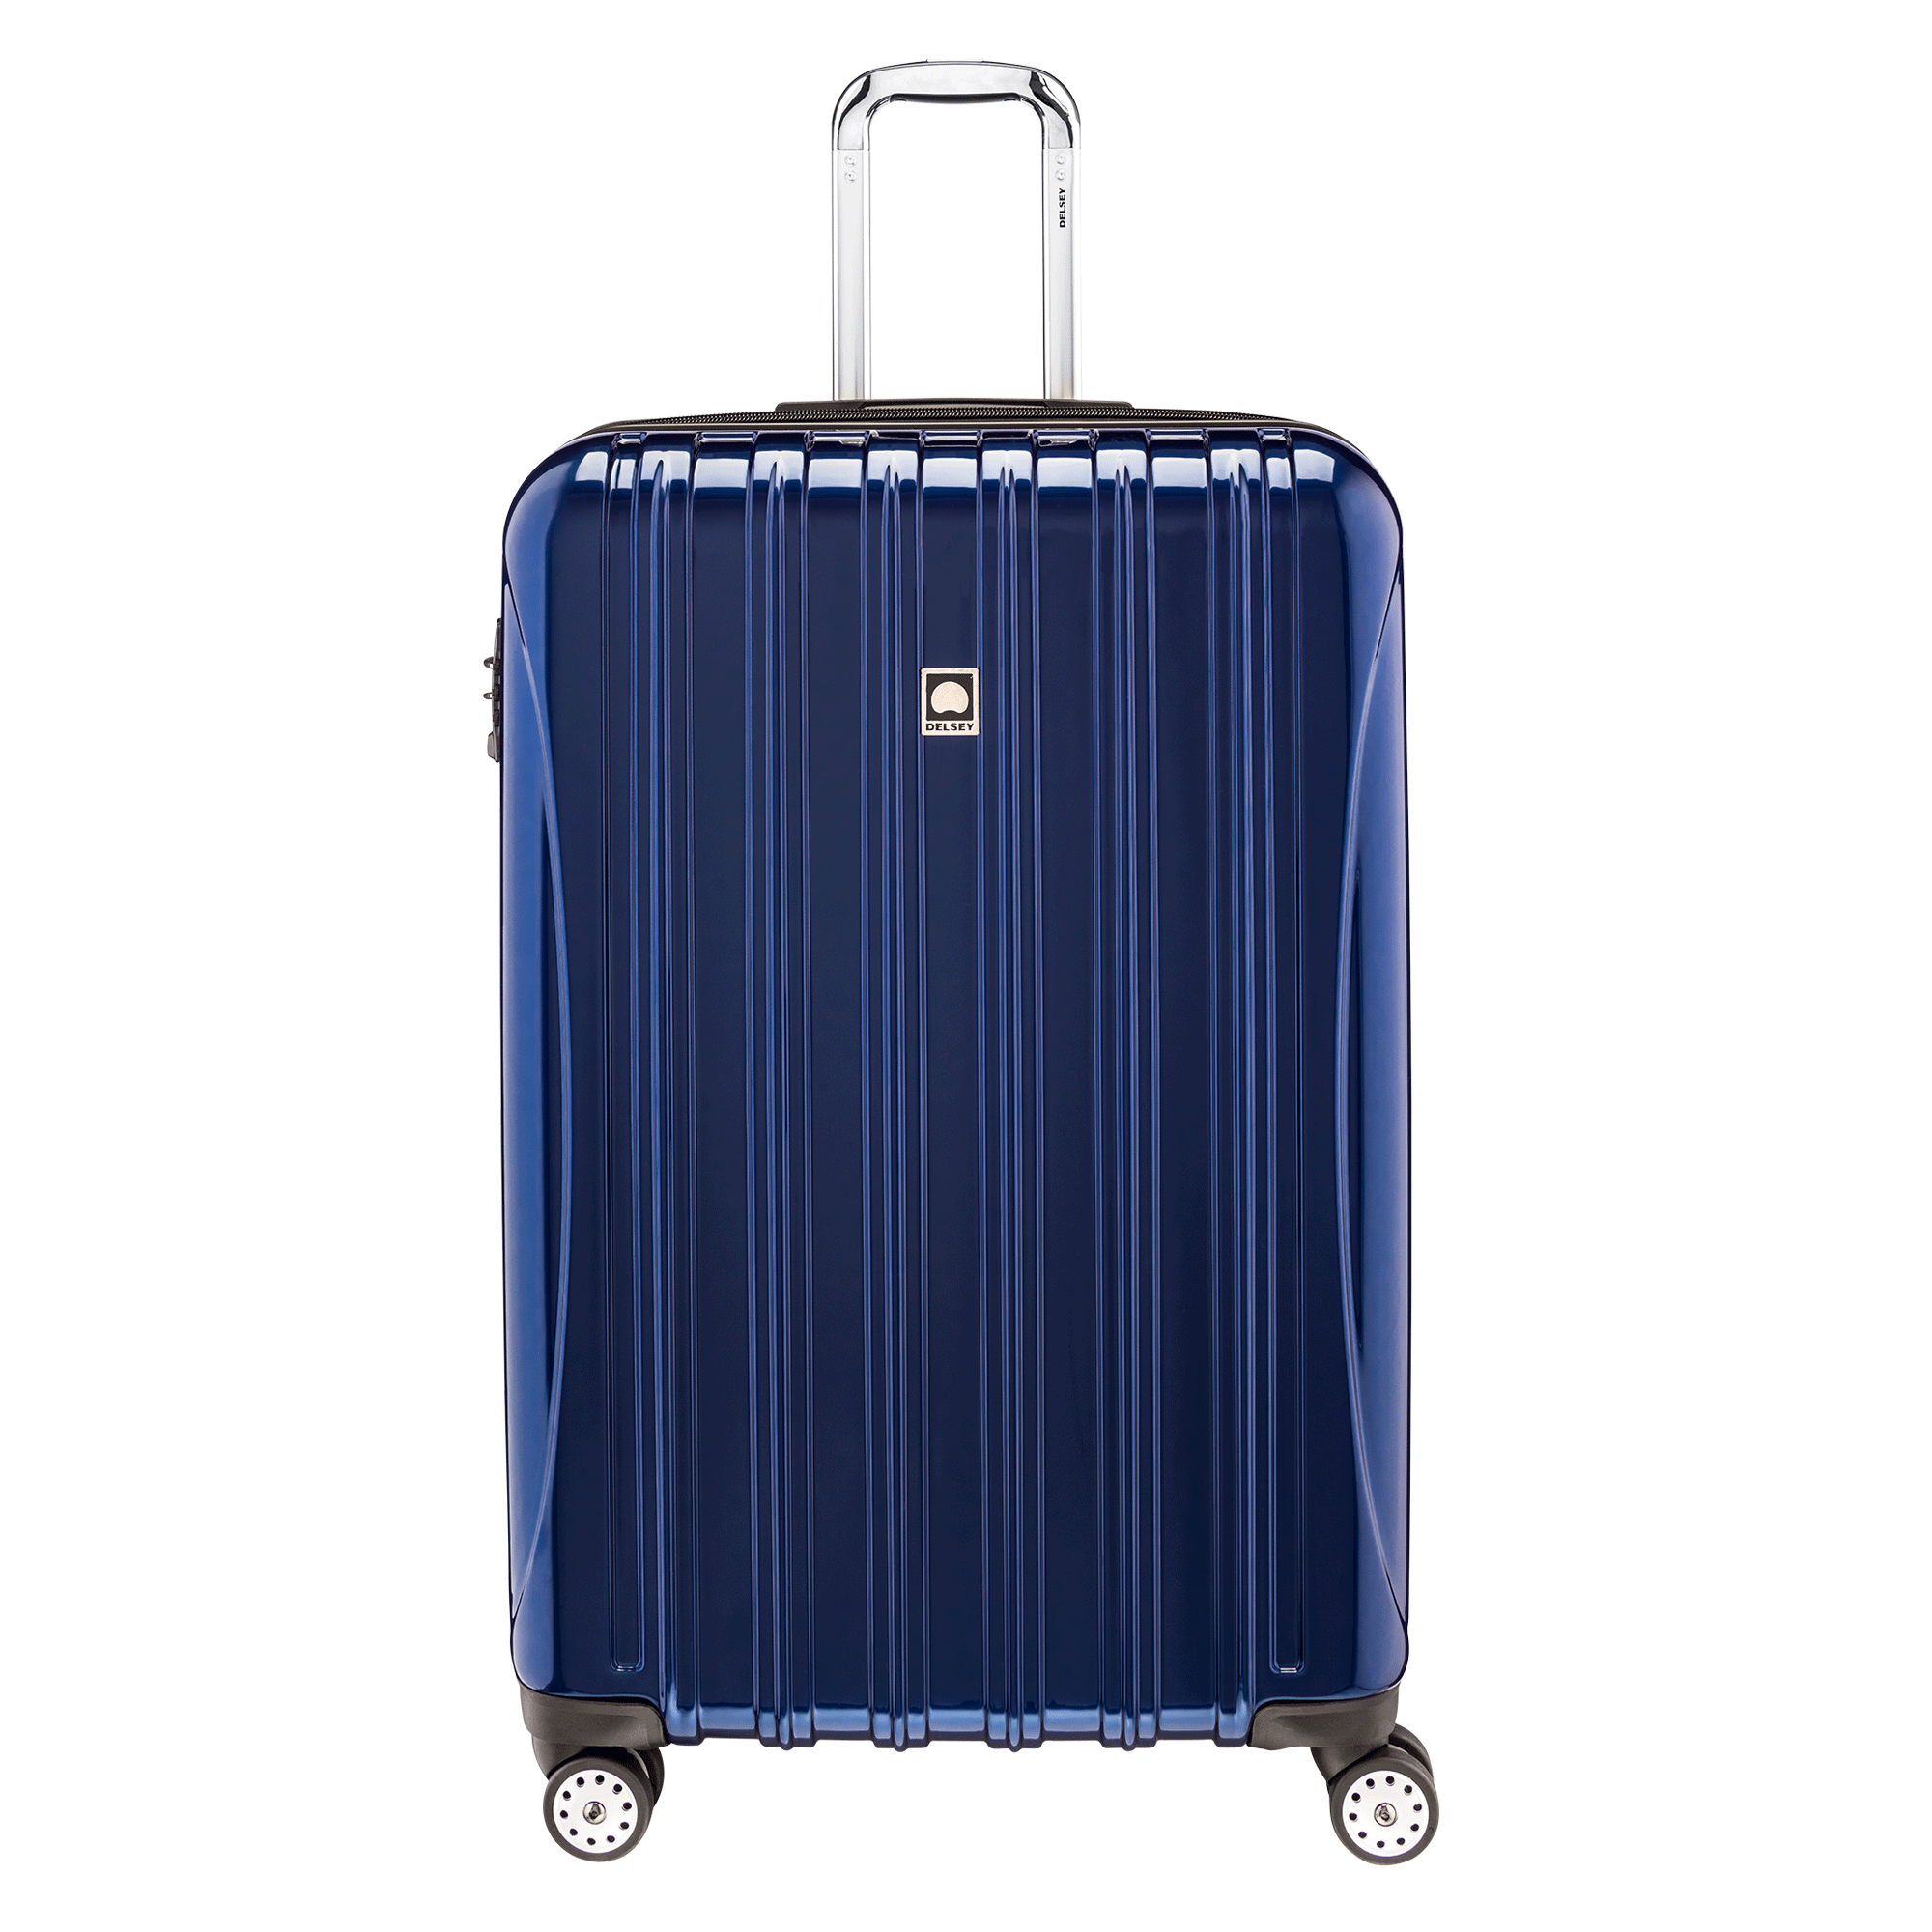 Delsey Luggage Expandable Spinner Trolley